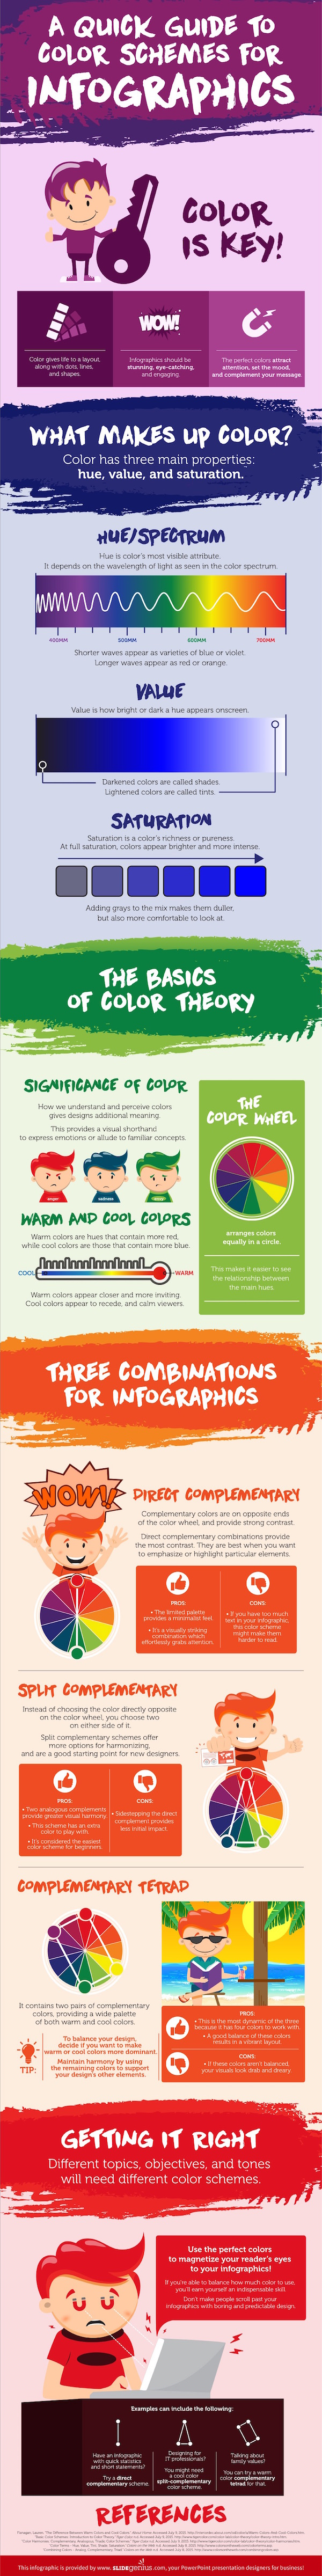 A Quick Guide On Using Color Schemes To Create Eye-Catching Infographics